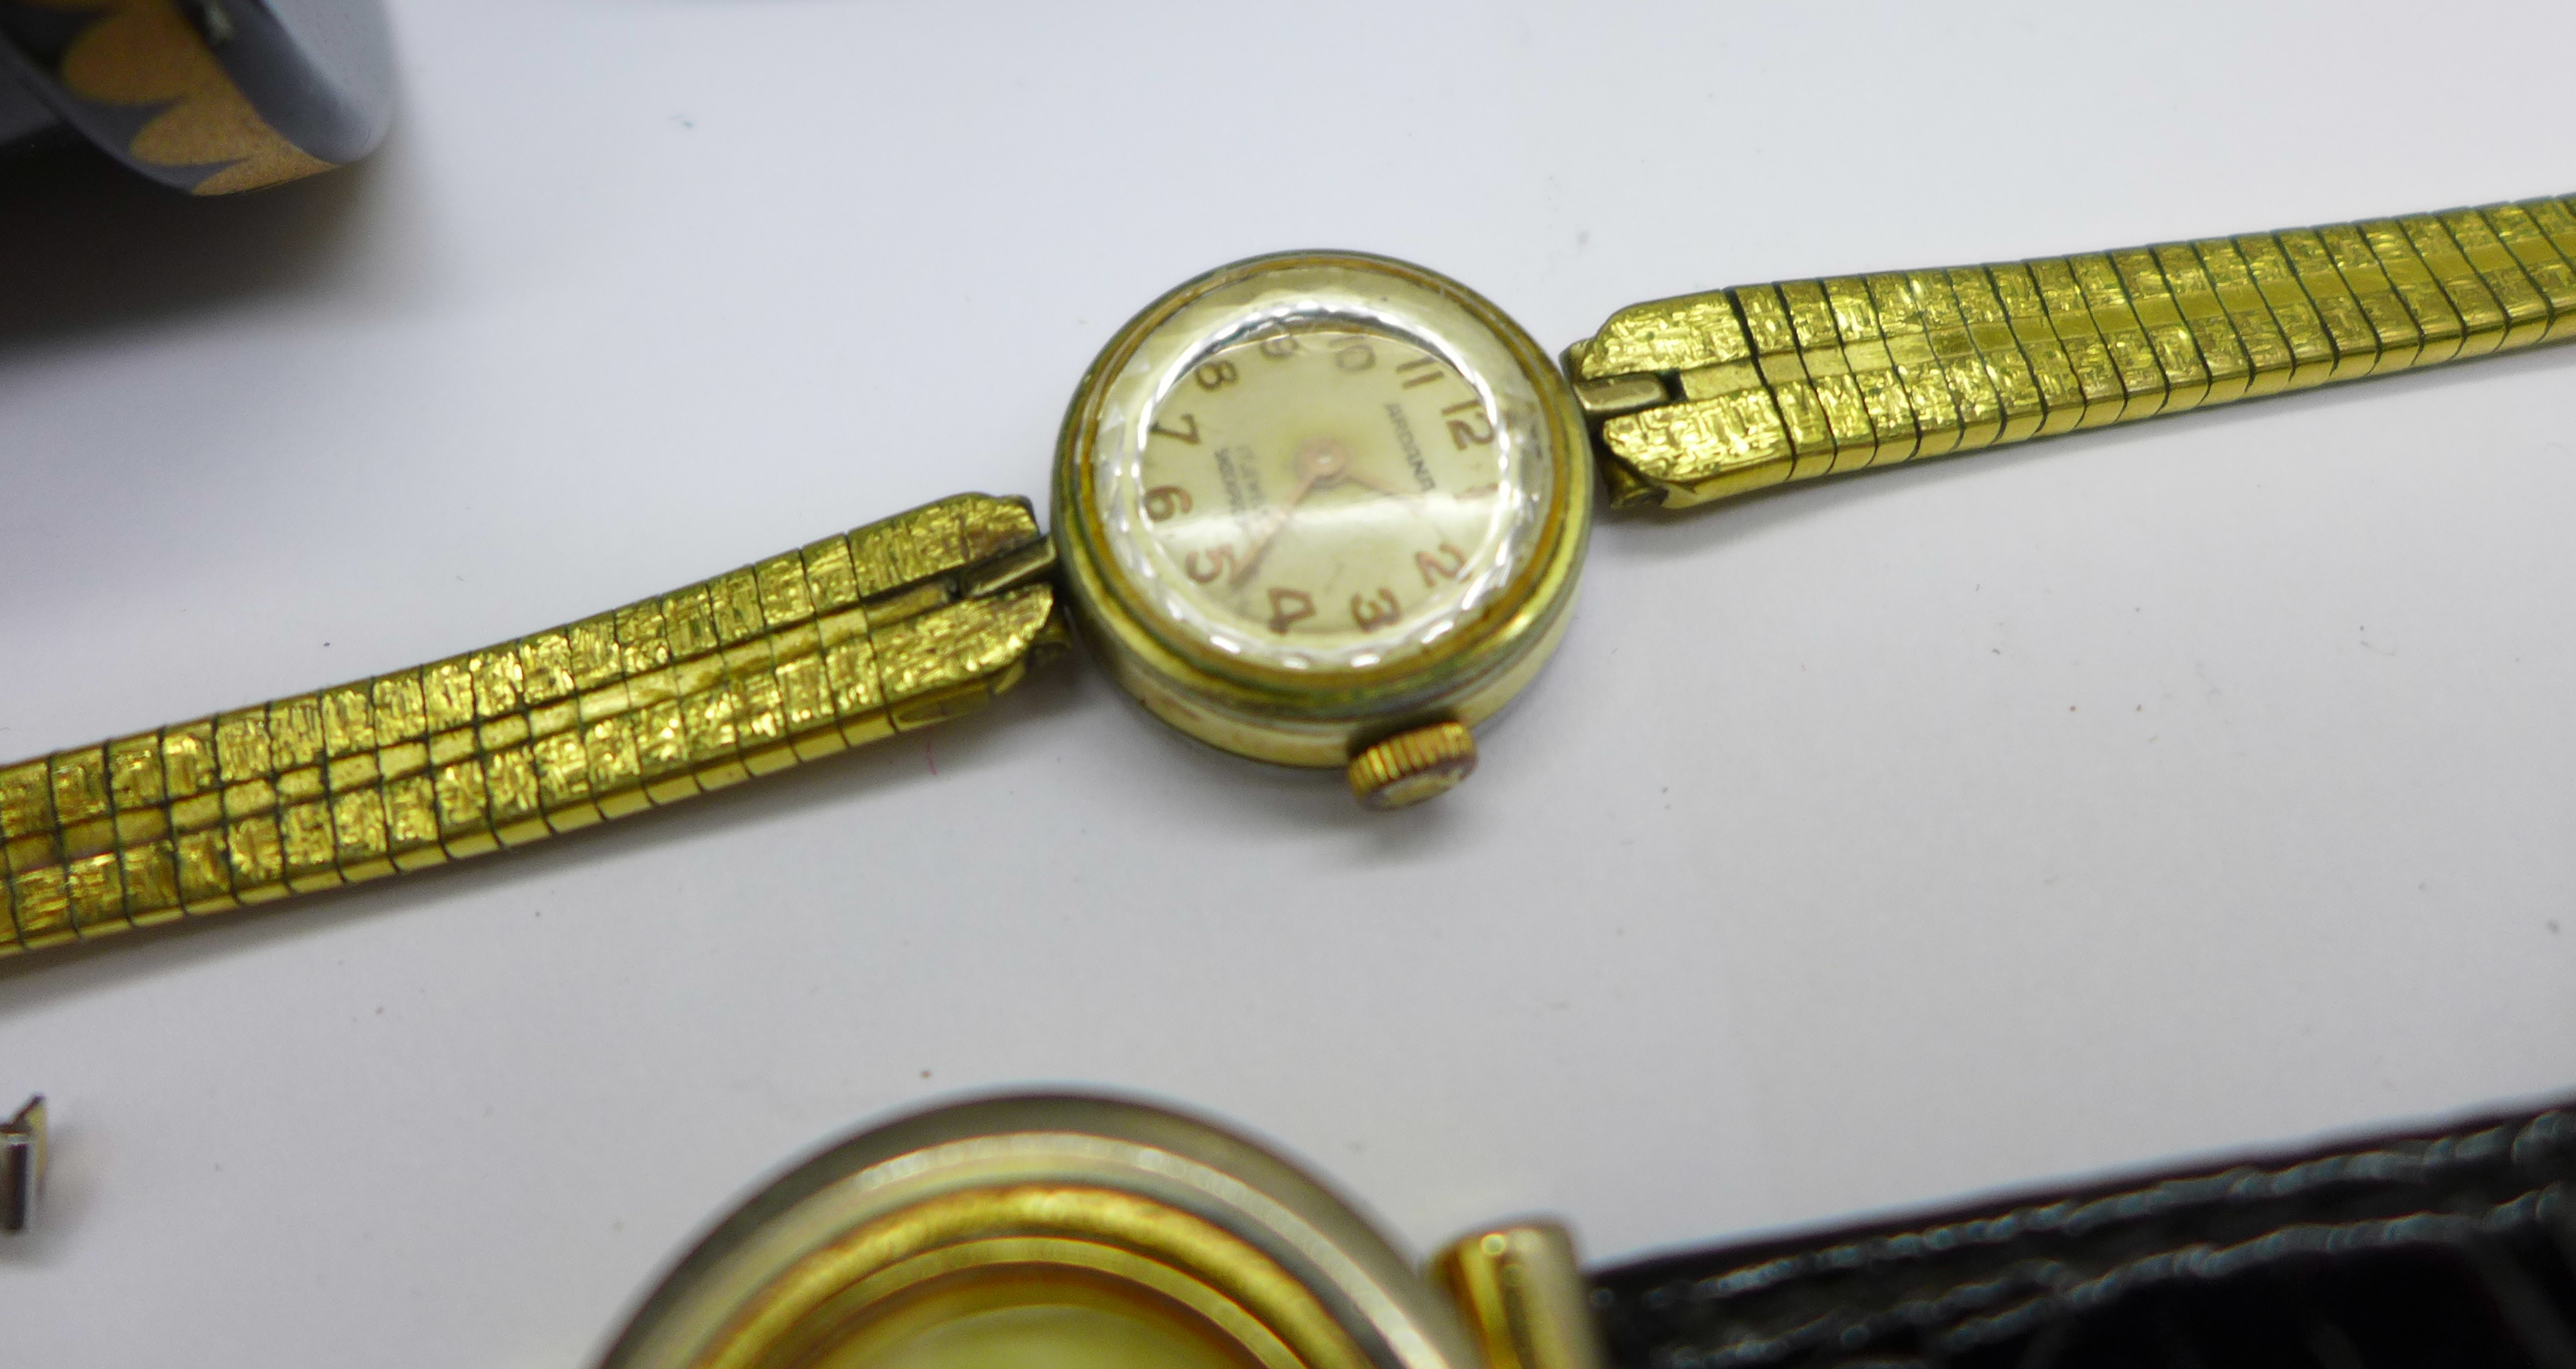 Five lady's wristwatches, a Kienzle travel clock and a trinket box - Image 4 of 9